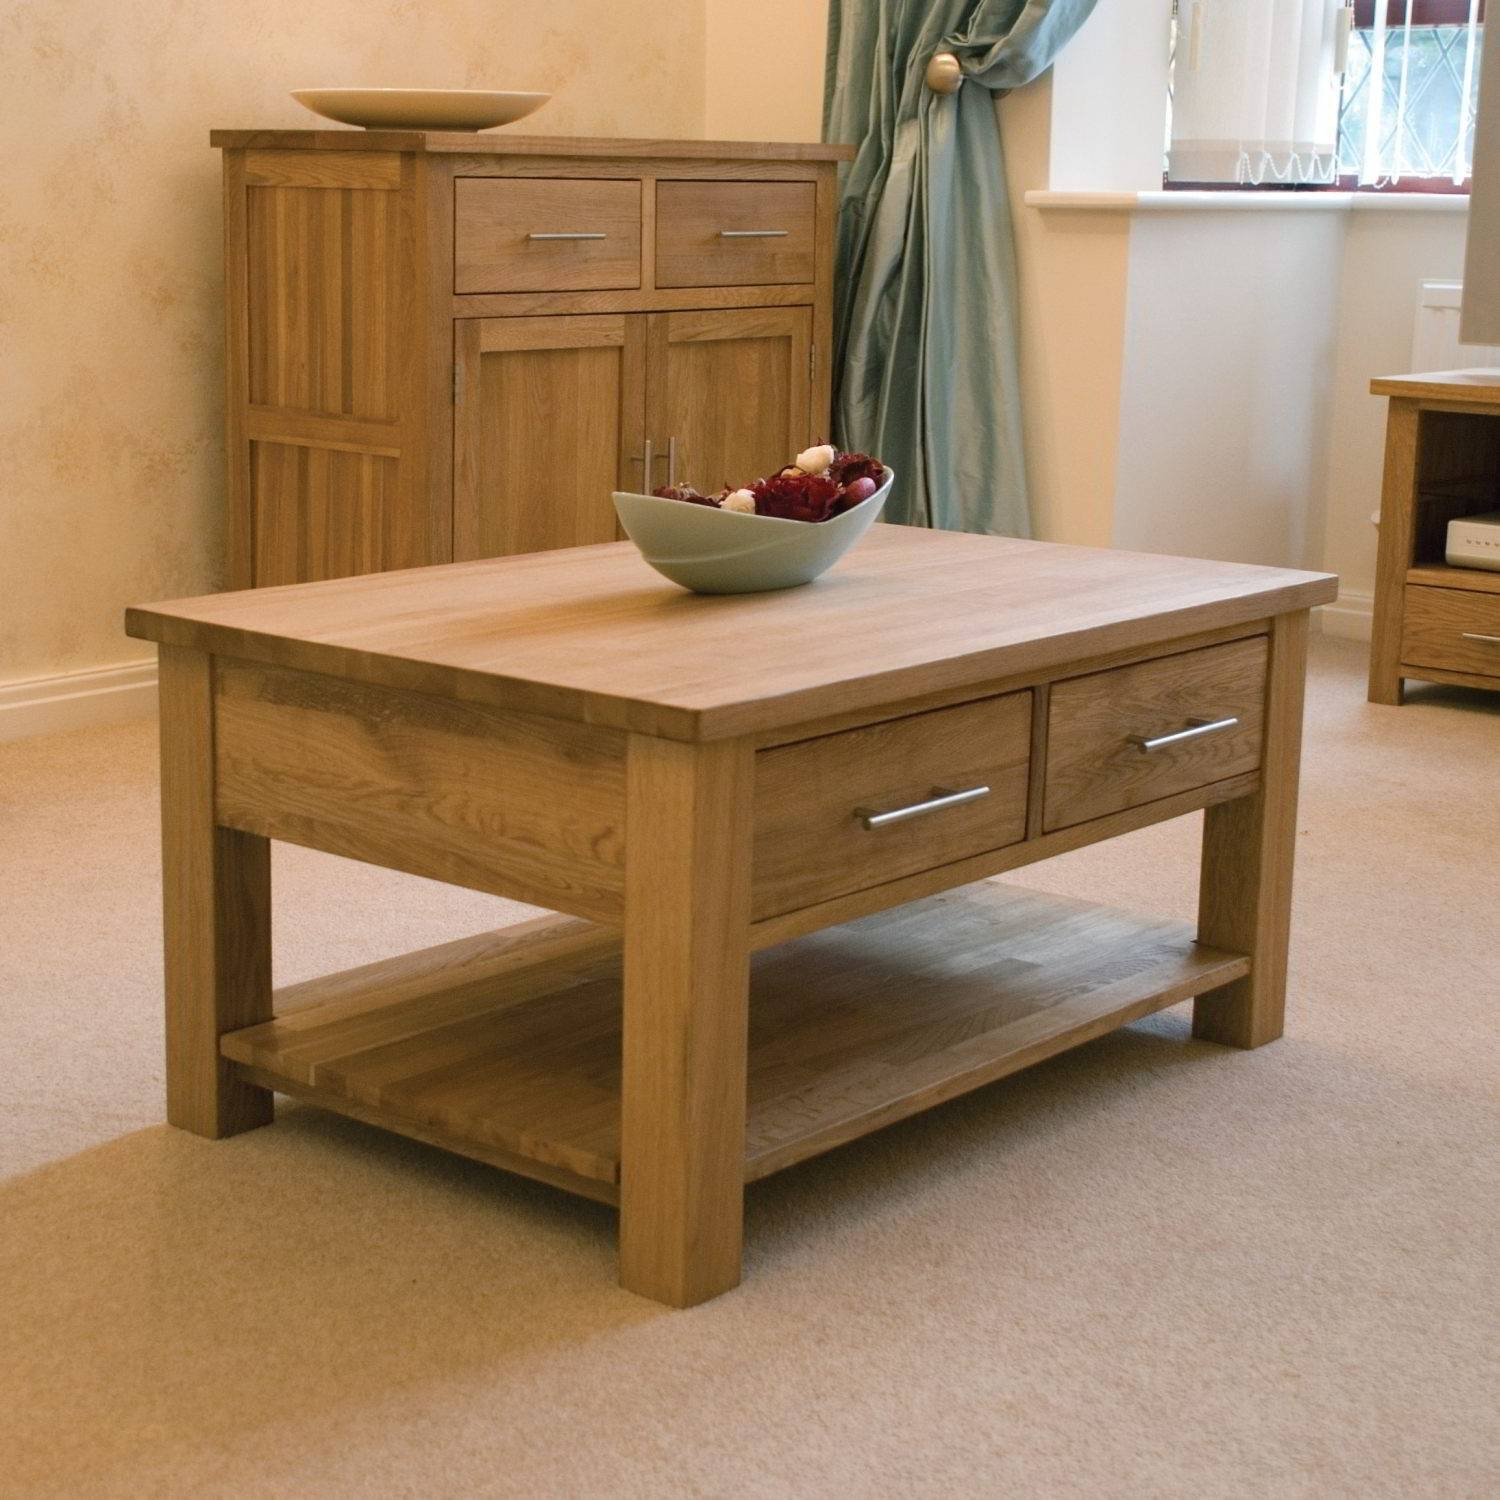 Eton Solid Oak Living Room Lounge Furniture Storage Coffee Table with regard to Oak Storage Coffee Tables (Image 7 of 15)